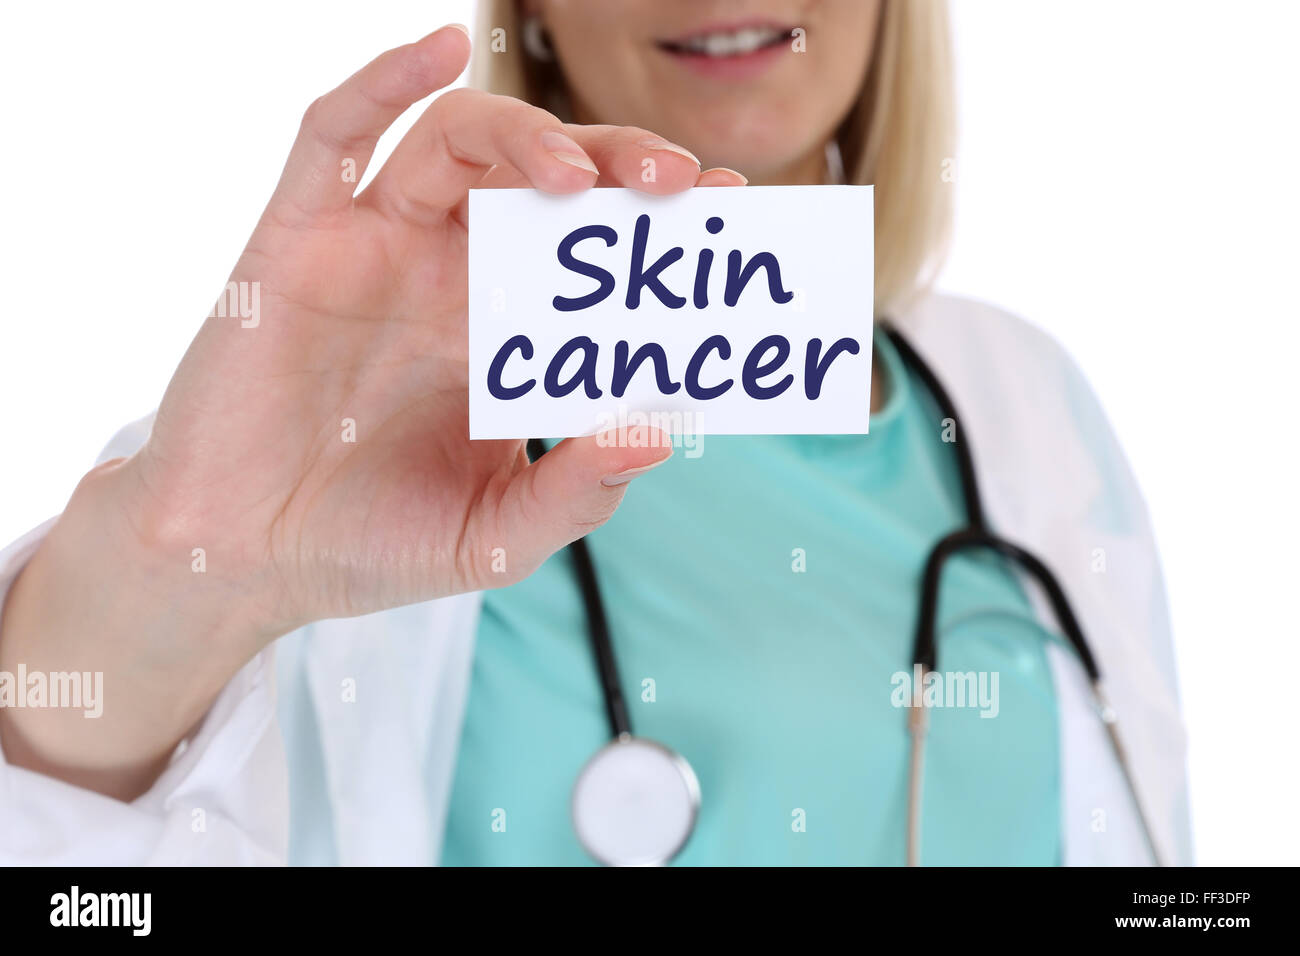 Skin cancer awareness disease ill illness health doctor nurse with sign - Stock Image